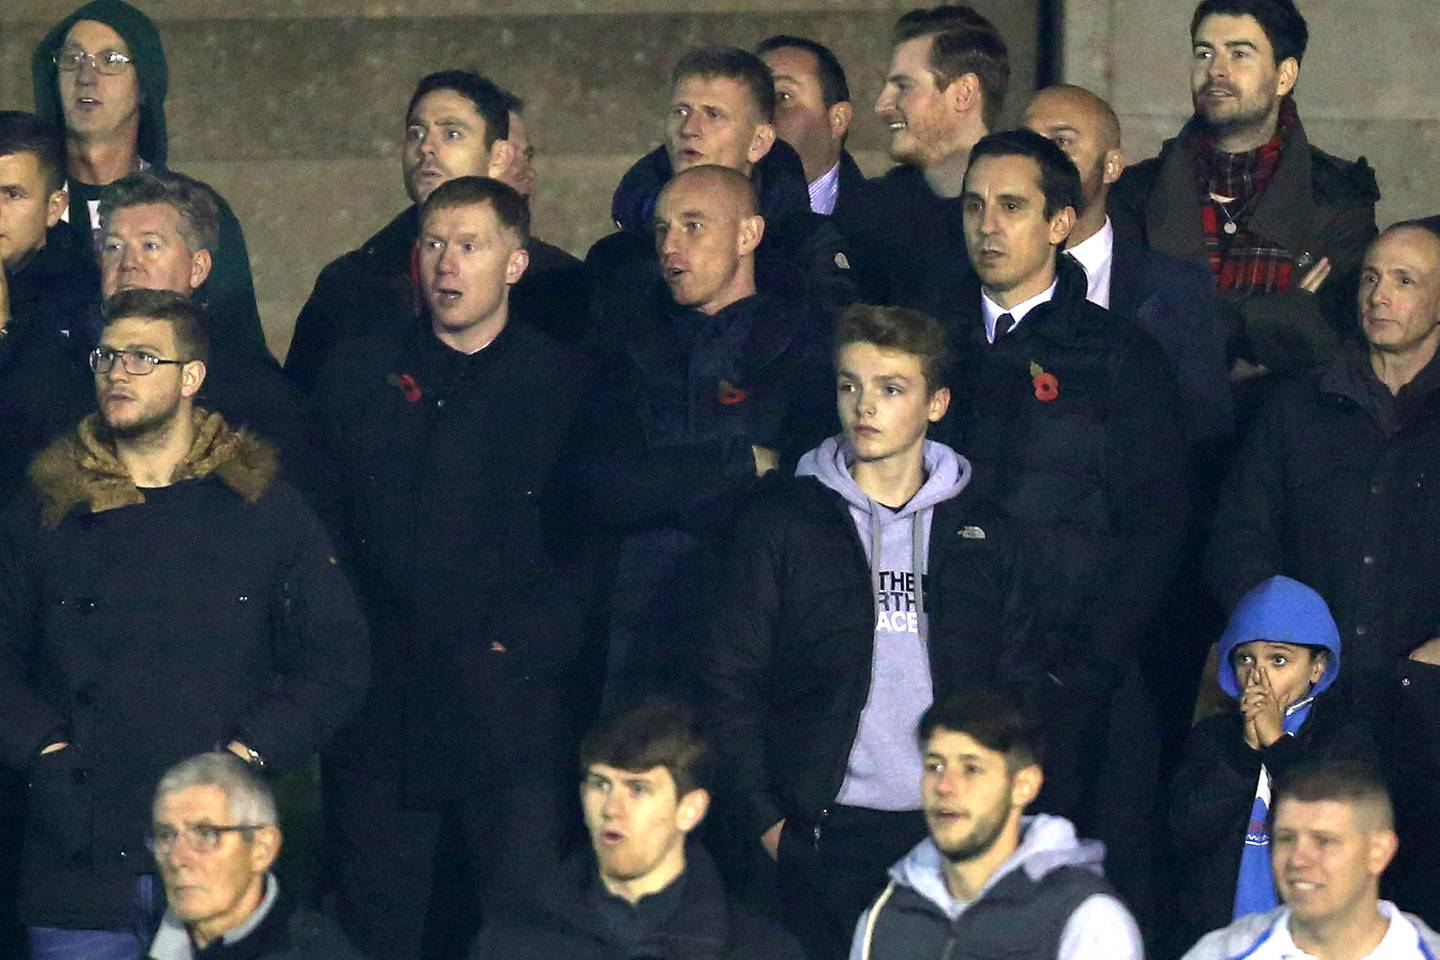 Nov. 6, 2015 - Manchester, United Kingdom - Paul Scholes, Nicky Butt and Gary Neville watch on from the stands - Salford City vs Notts County - The Emirates FA Cup - Moor Lane - Manchester - 06/11/2015 Pic Philip Oldham/SportImage. (Cal Sport Media via AP Images)